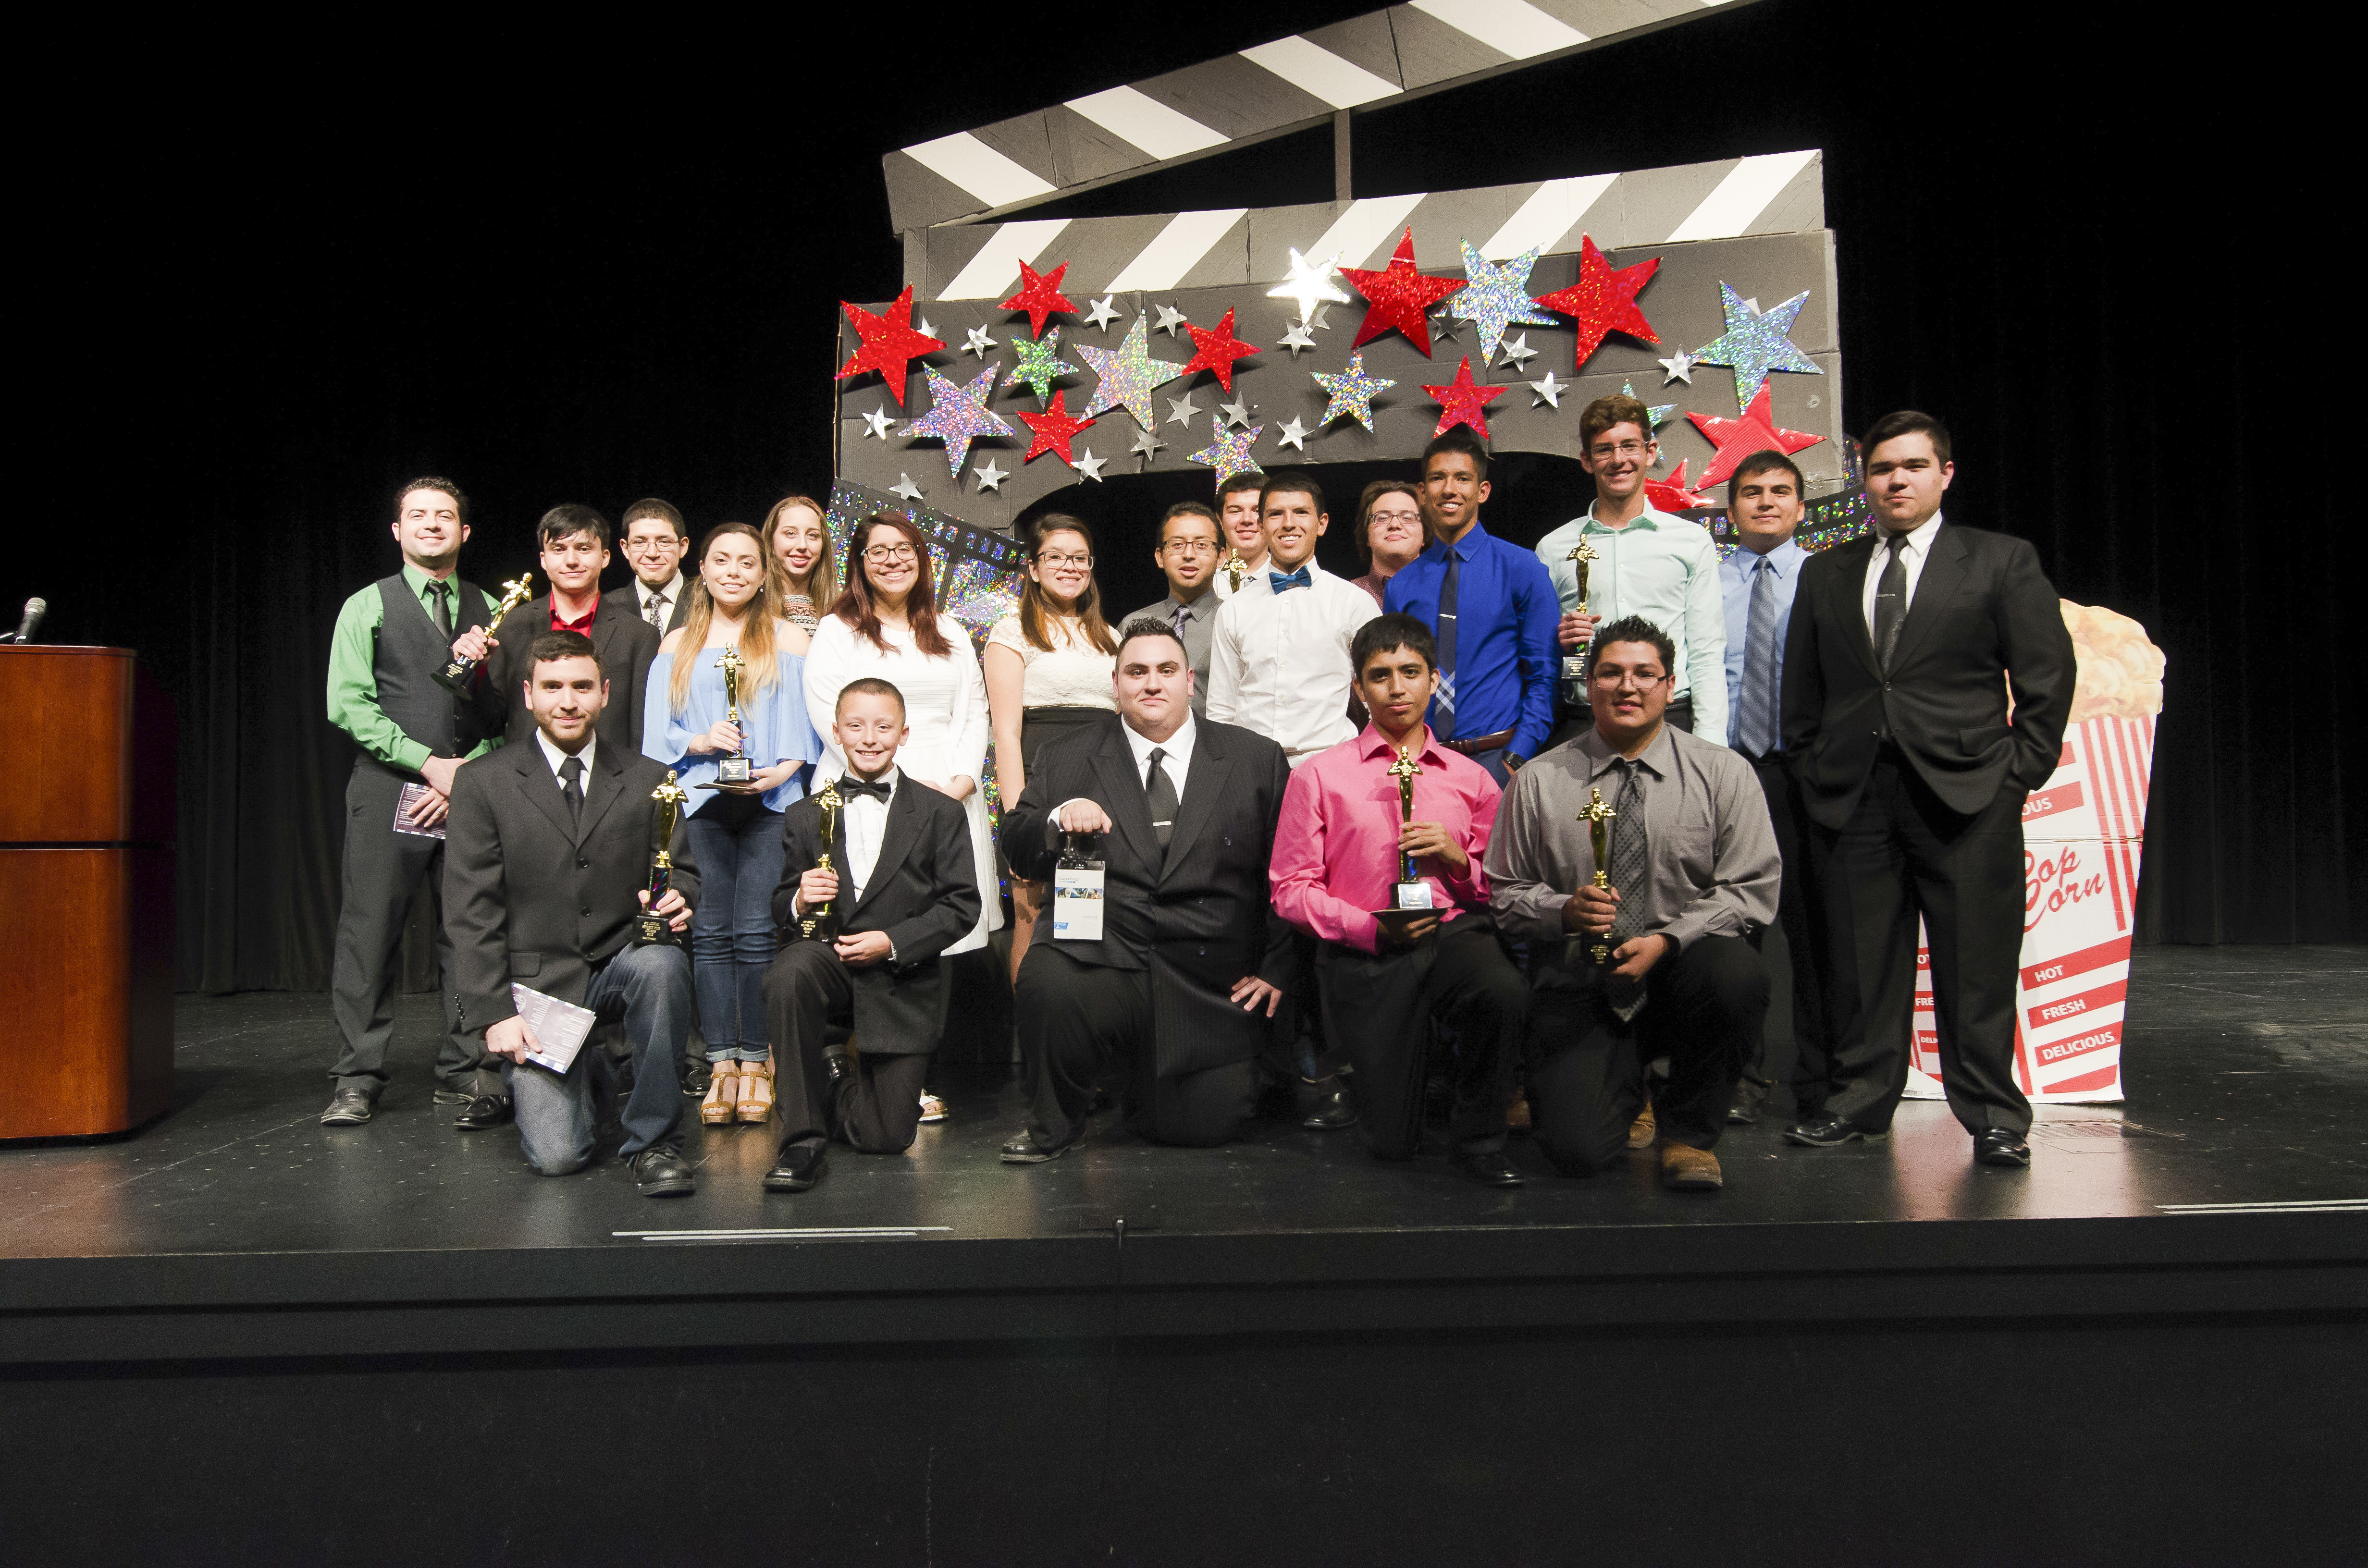 Best of the best honored at 2015 Student Film Awards